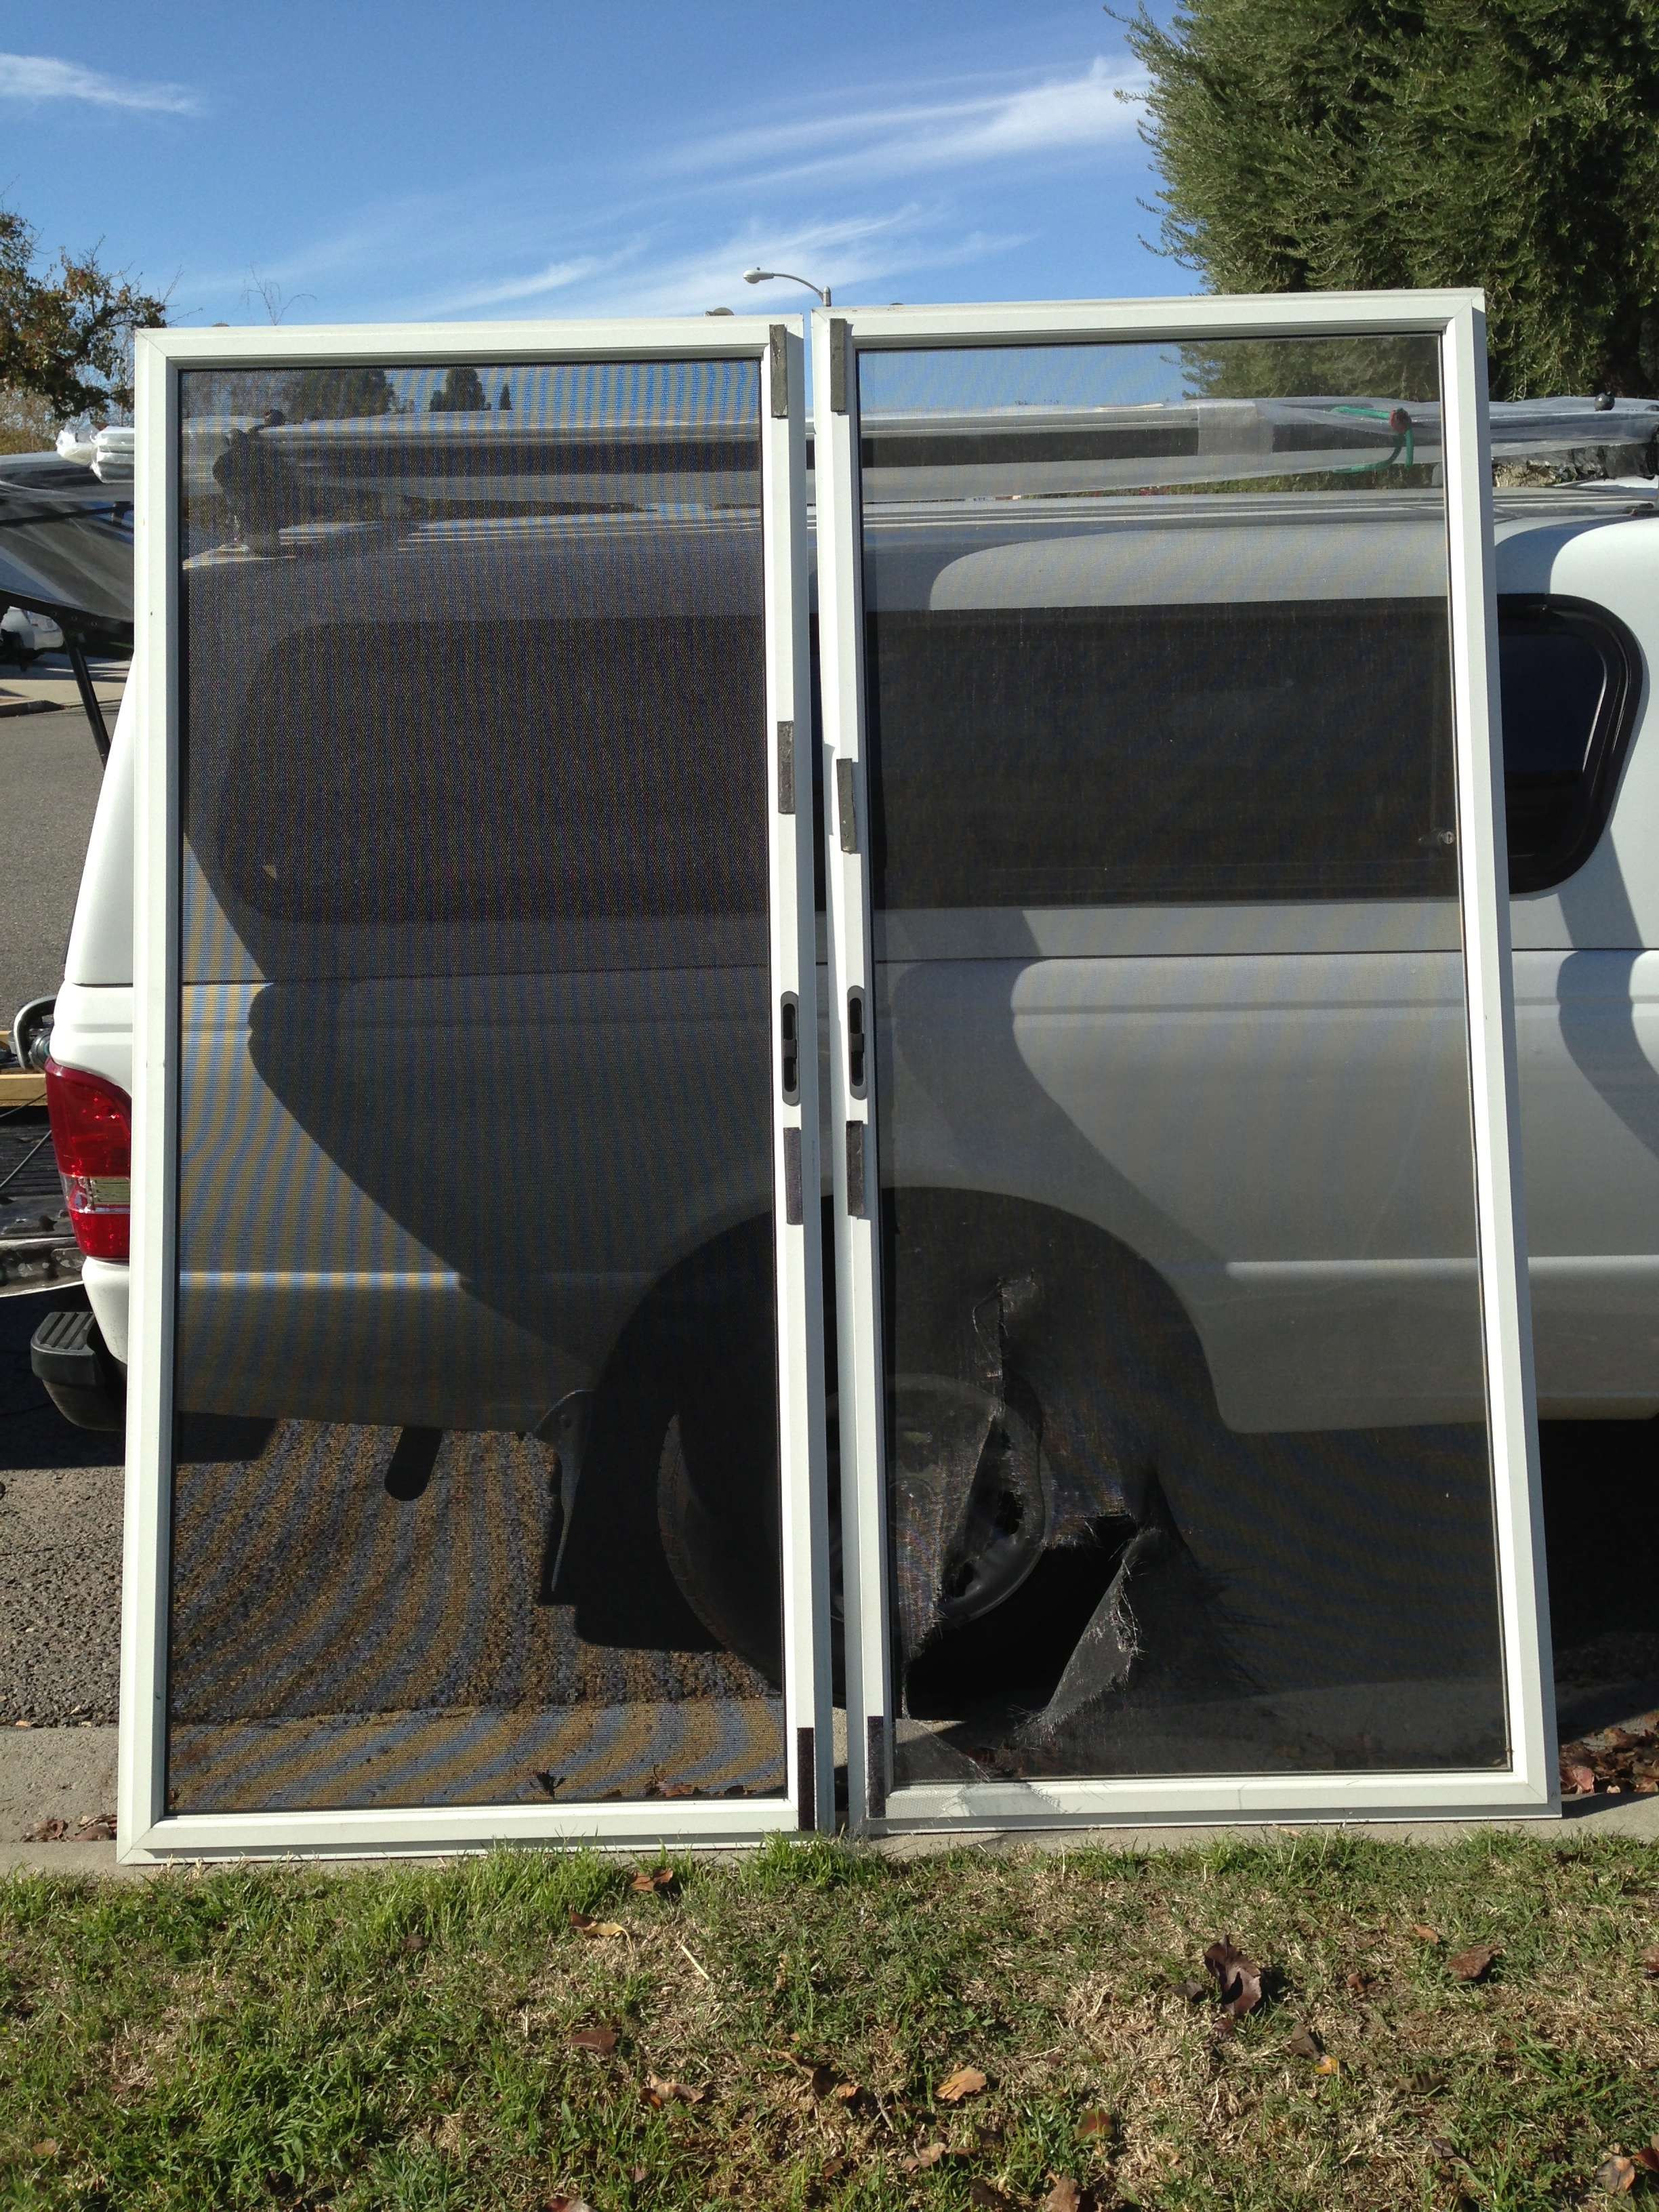 Simi valley screen doors rescreened with new heavy duty for Double sliding screen door